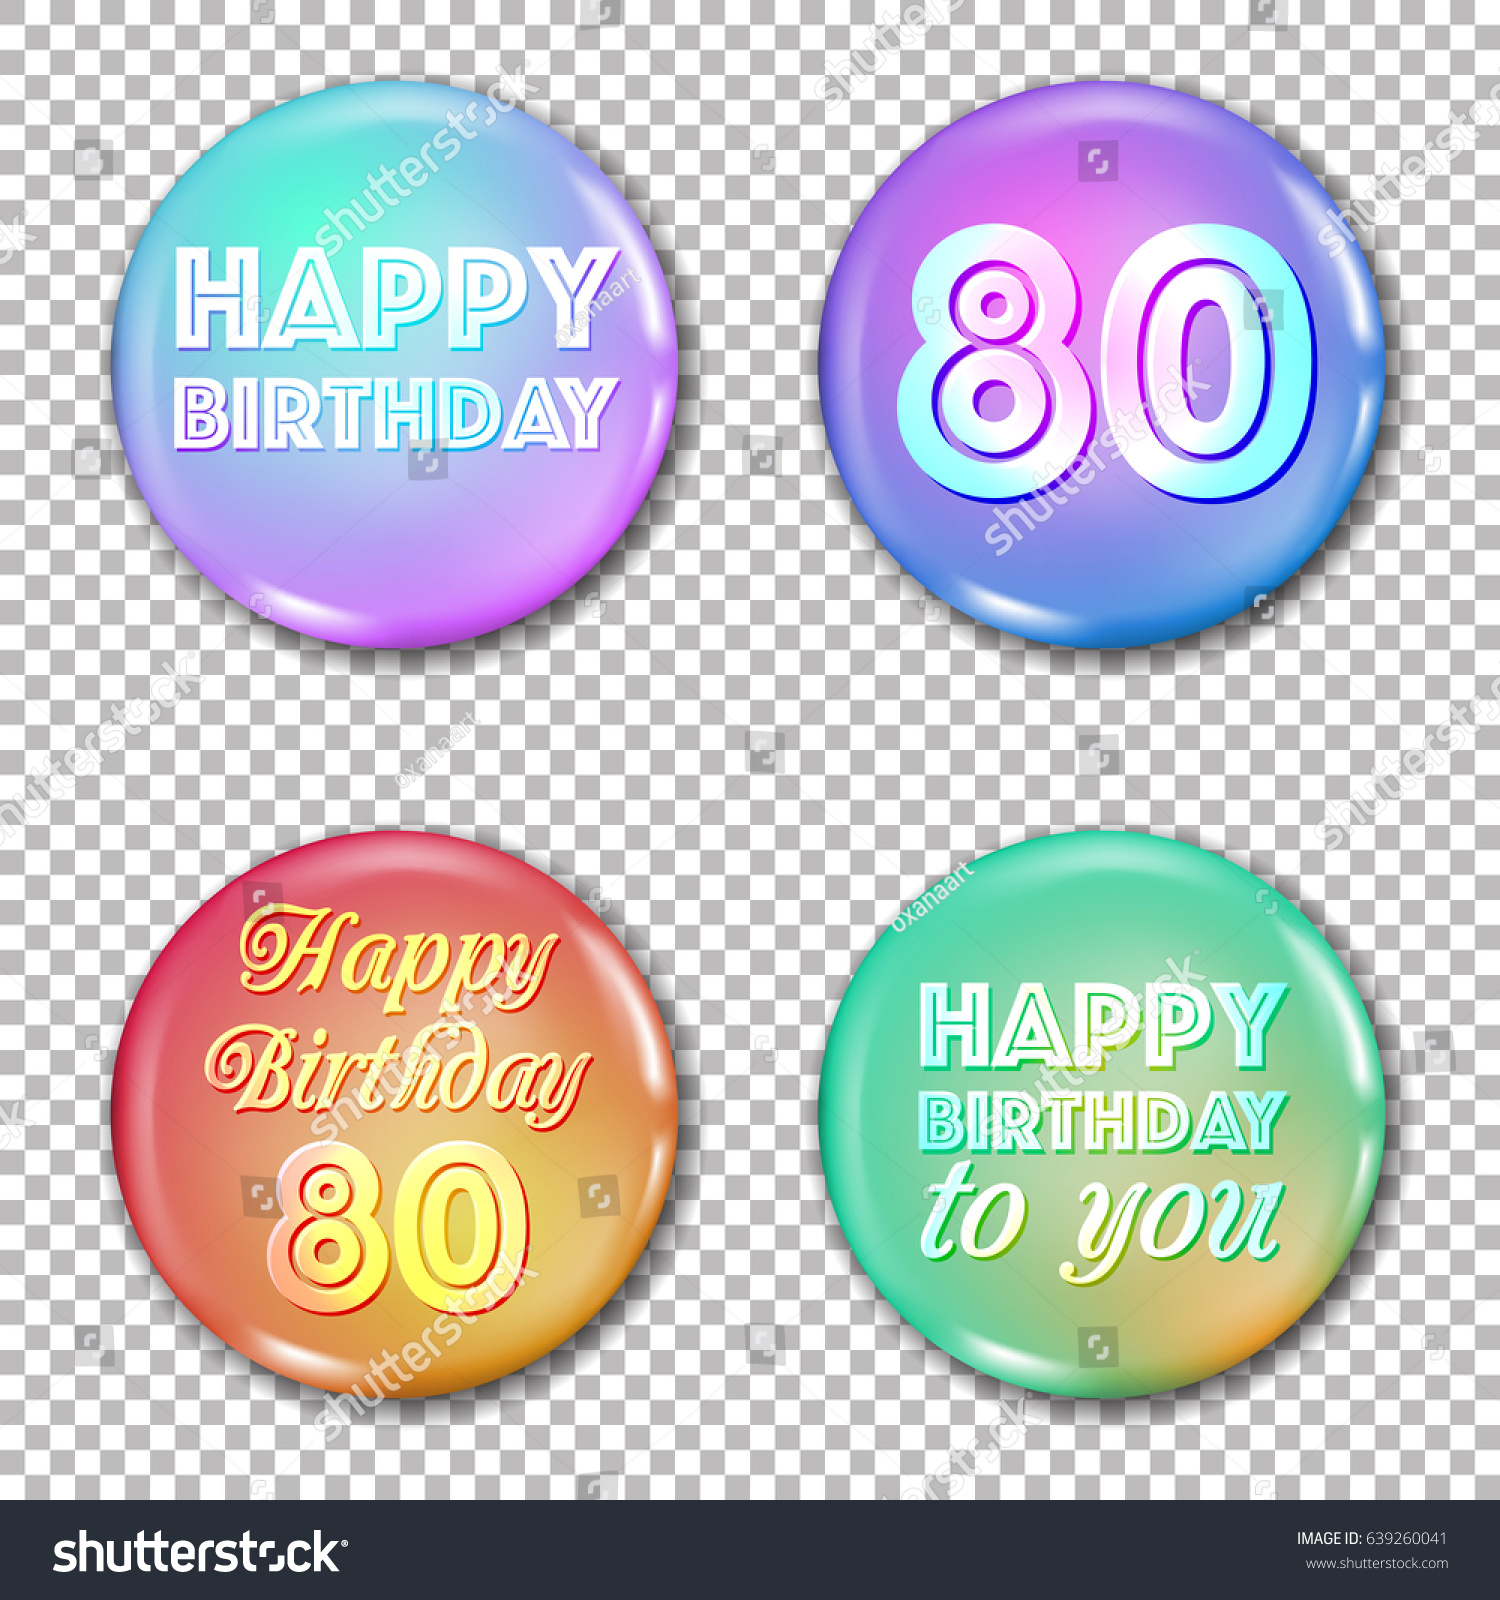 Happy Birthday Labels For Greeting Card Or Decoration Jubilee 80 Years Old Celebration Glossy Circle Stickers